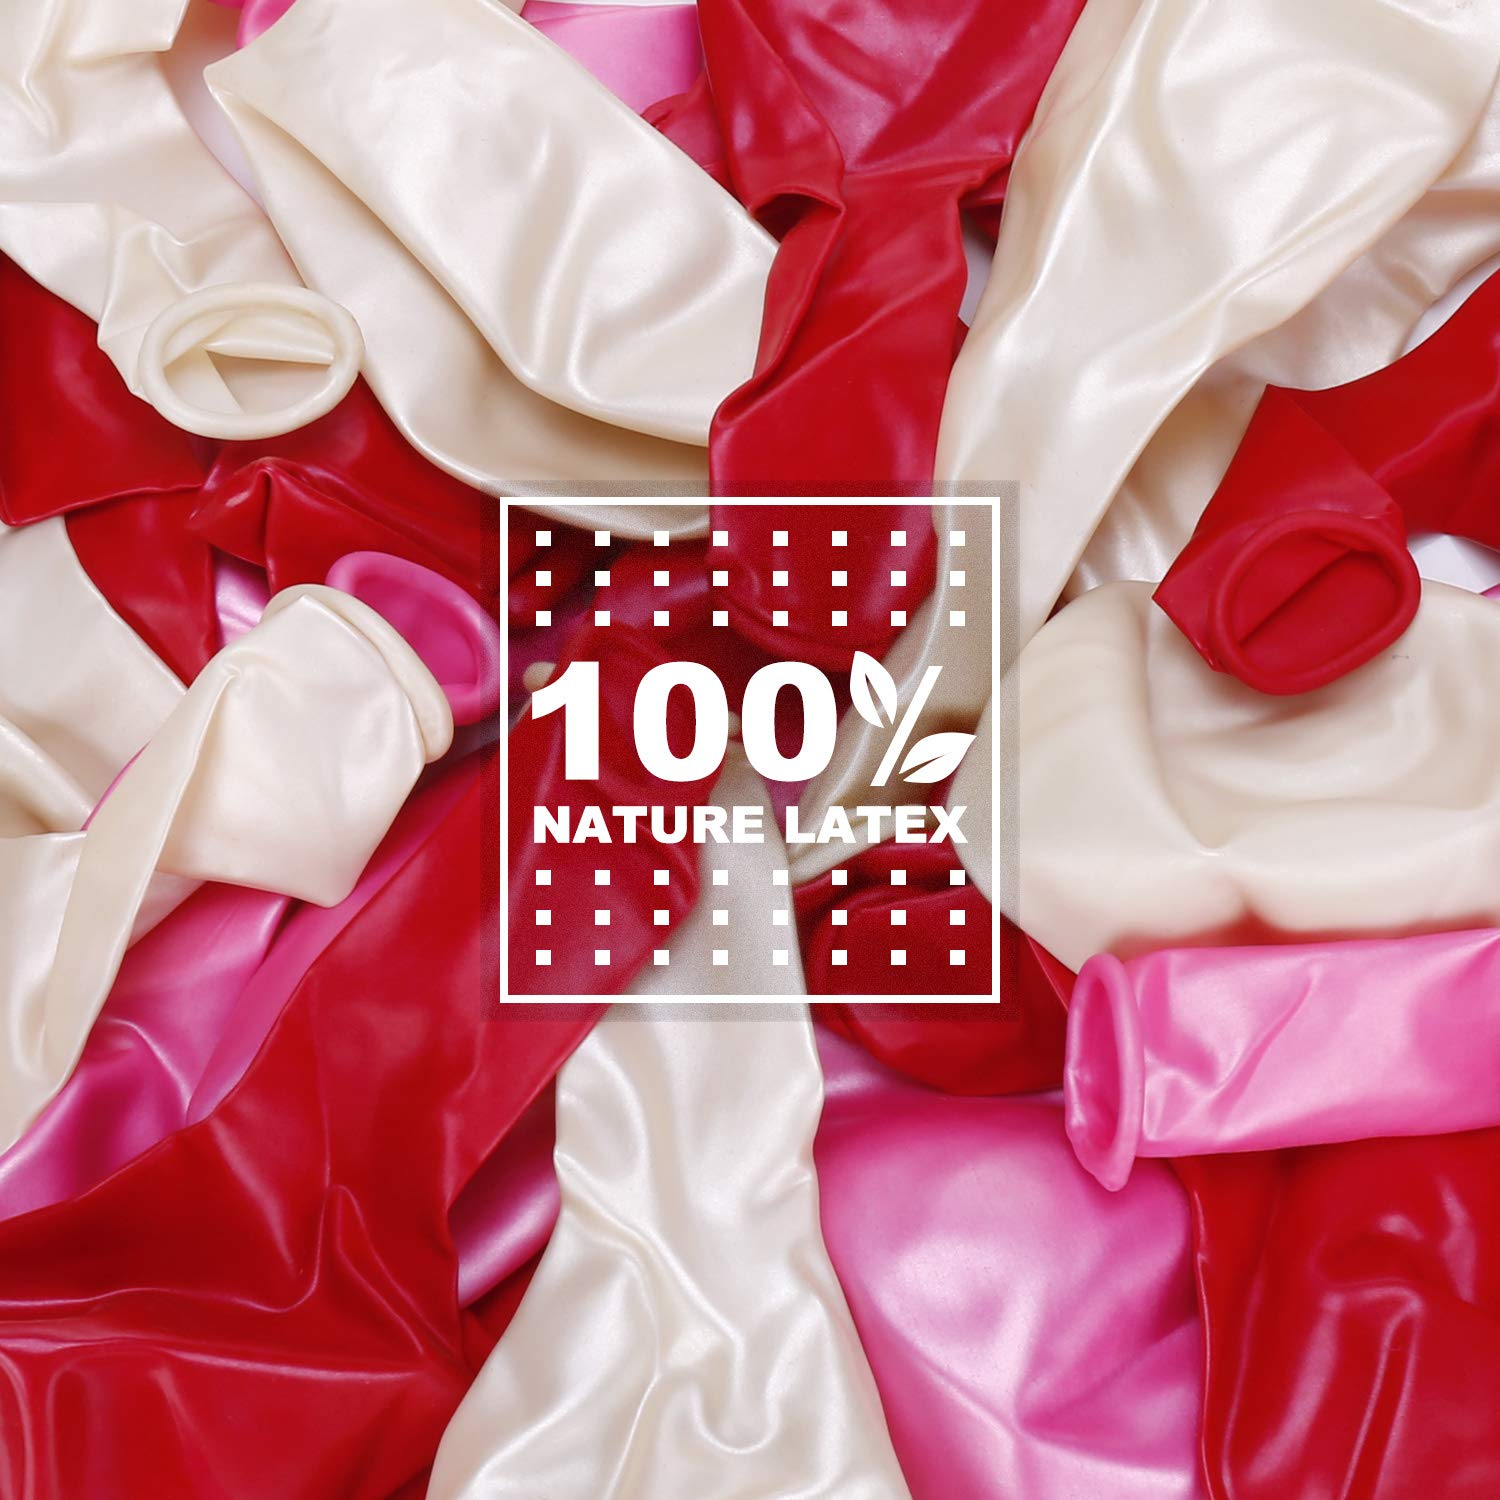 Elegear Birthday Balloons 100 Pcs, 12 Inches Assorted Bright Color Latex Balloons for Wedding, Anniversary, Graduation and Party (Red, White, Pink)